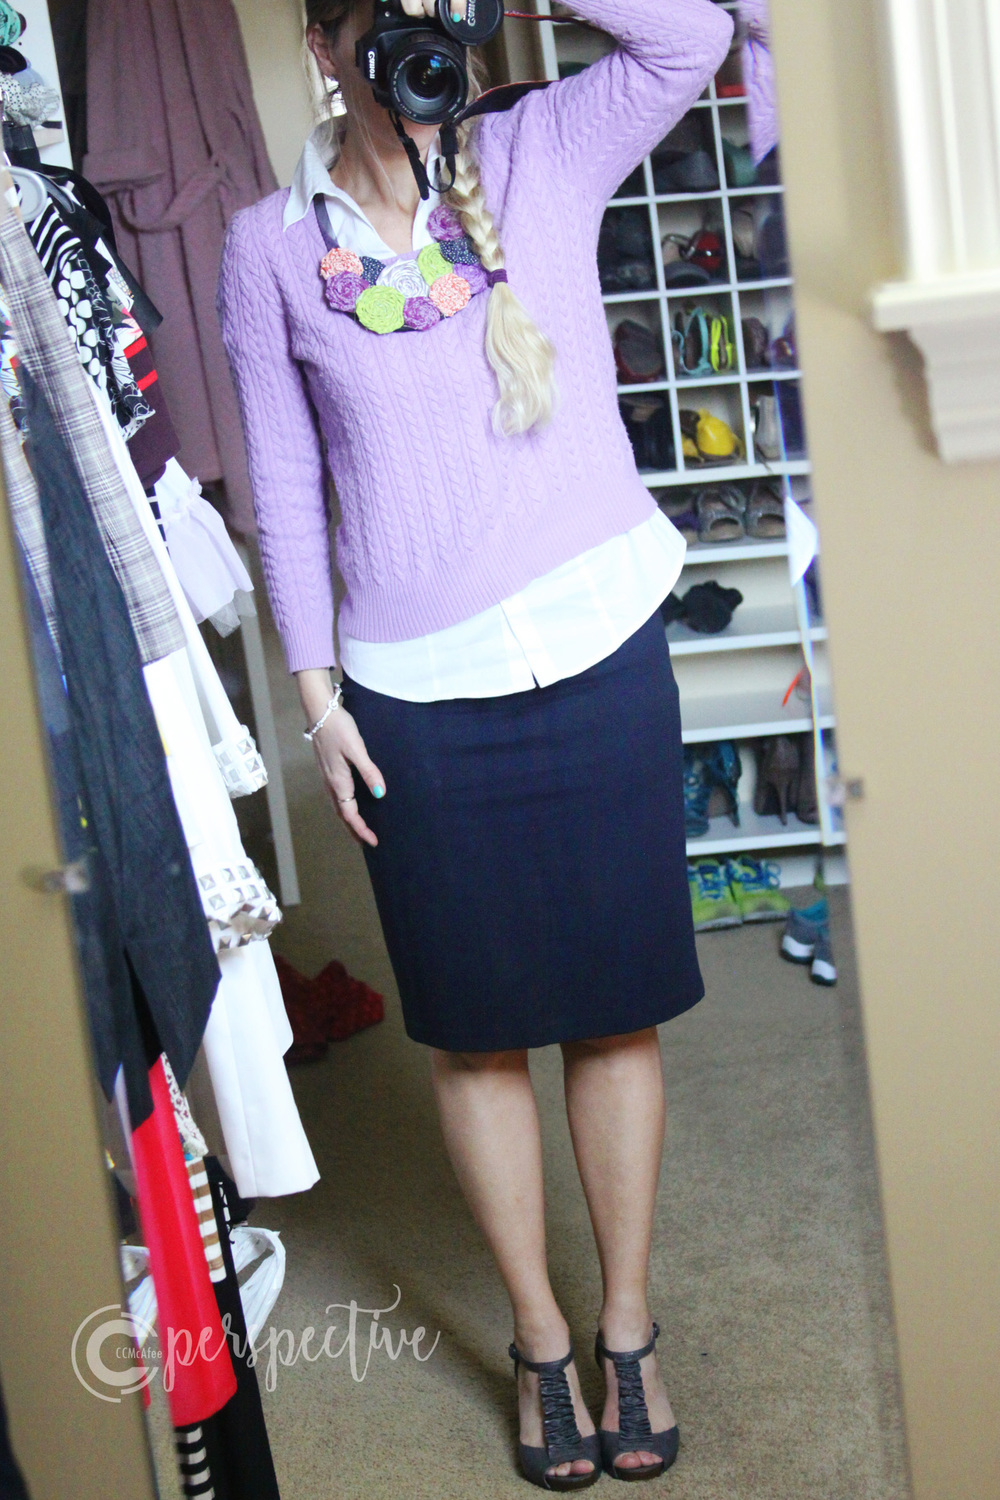 Sunday Look - navy skirt with layered lavender sweater, heels and bib necklace (that I made)